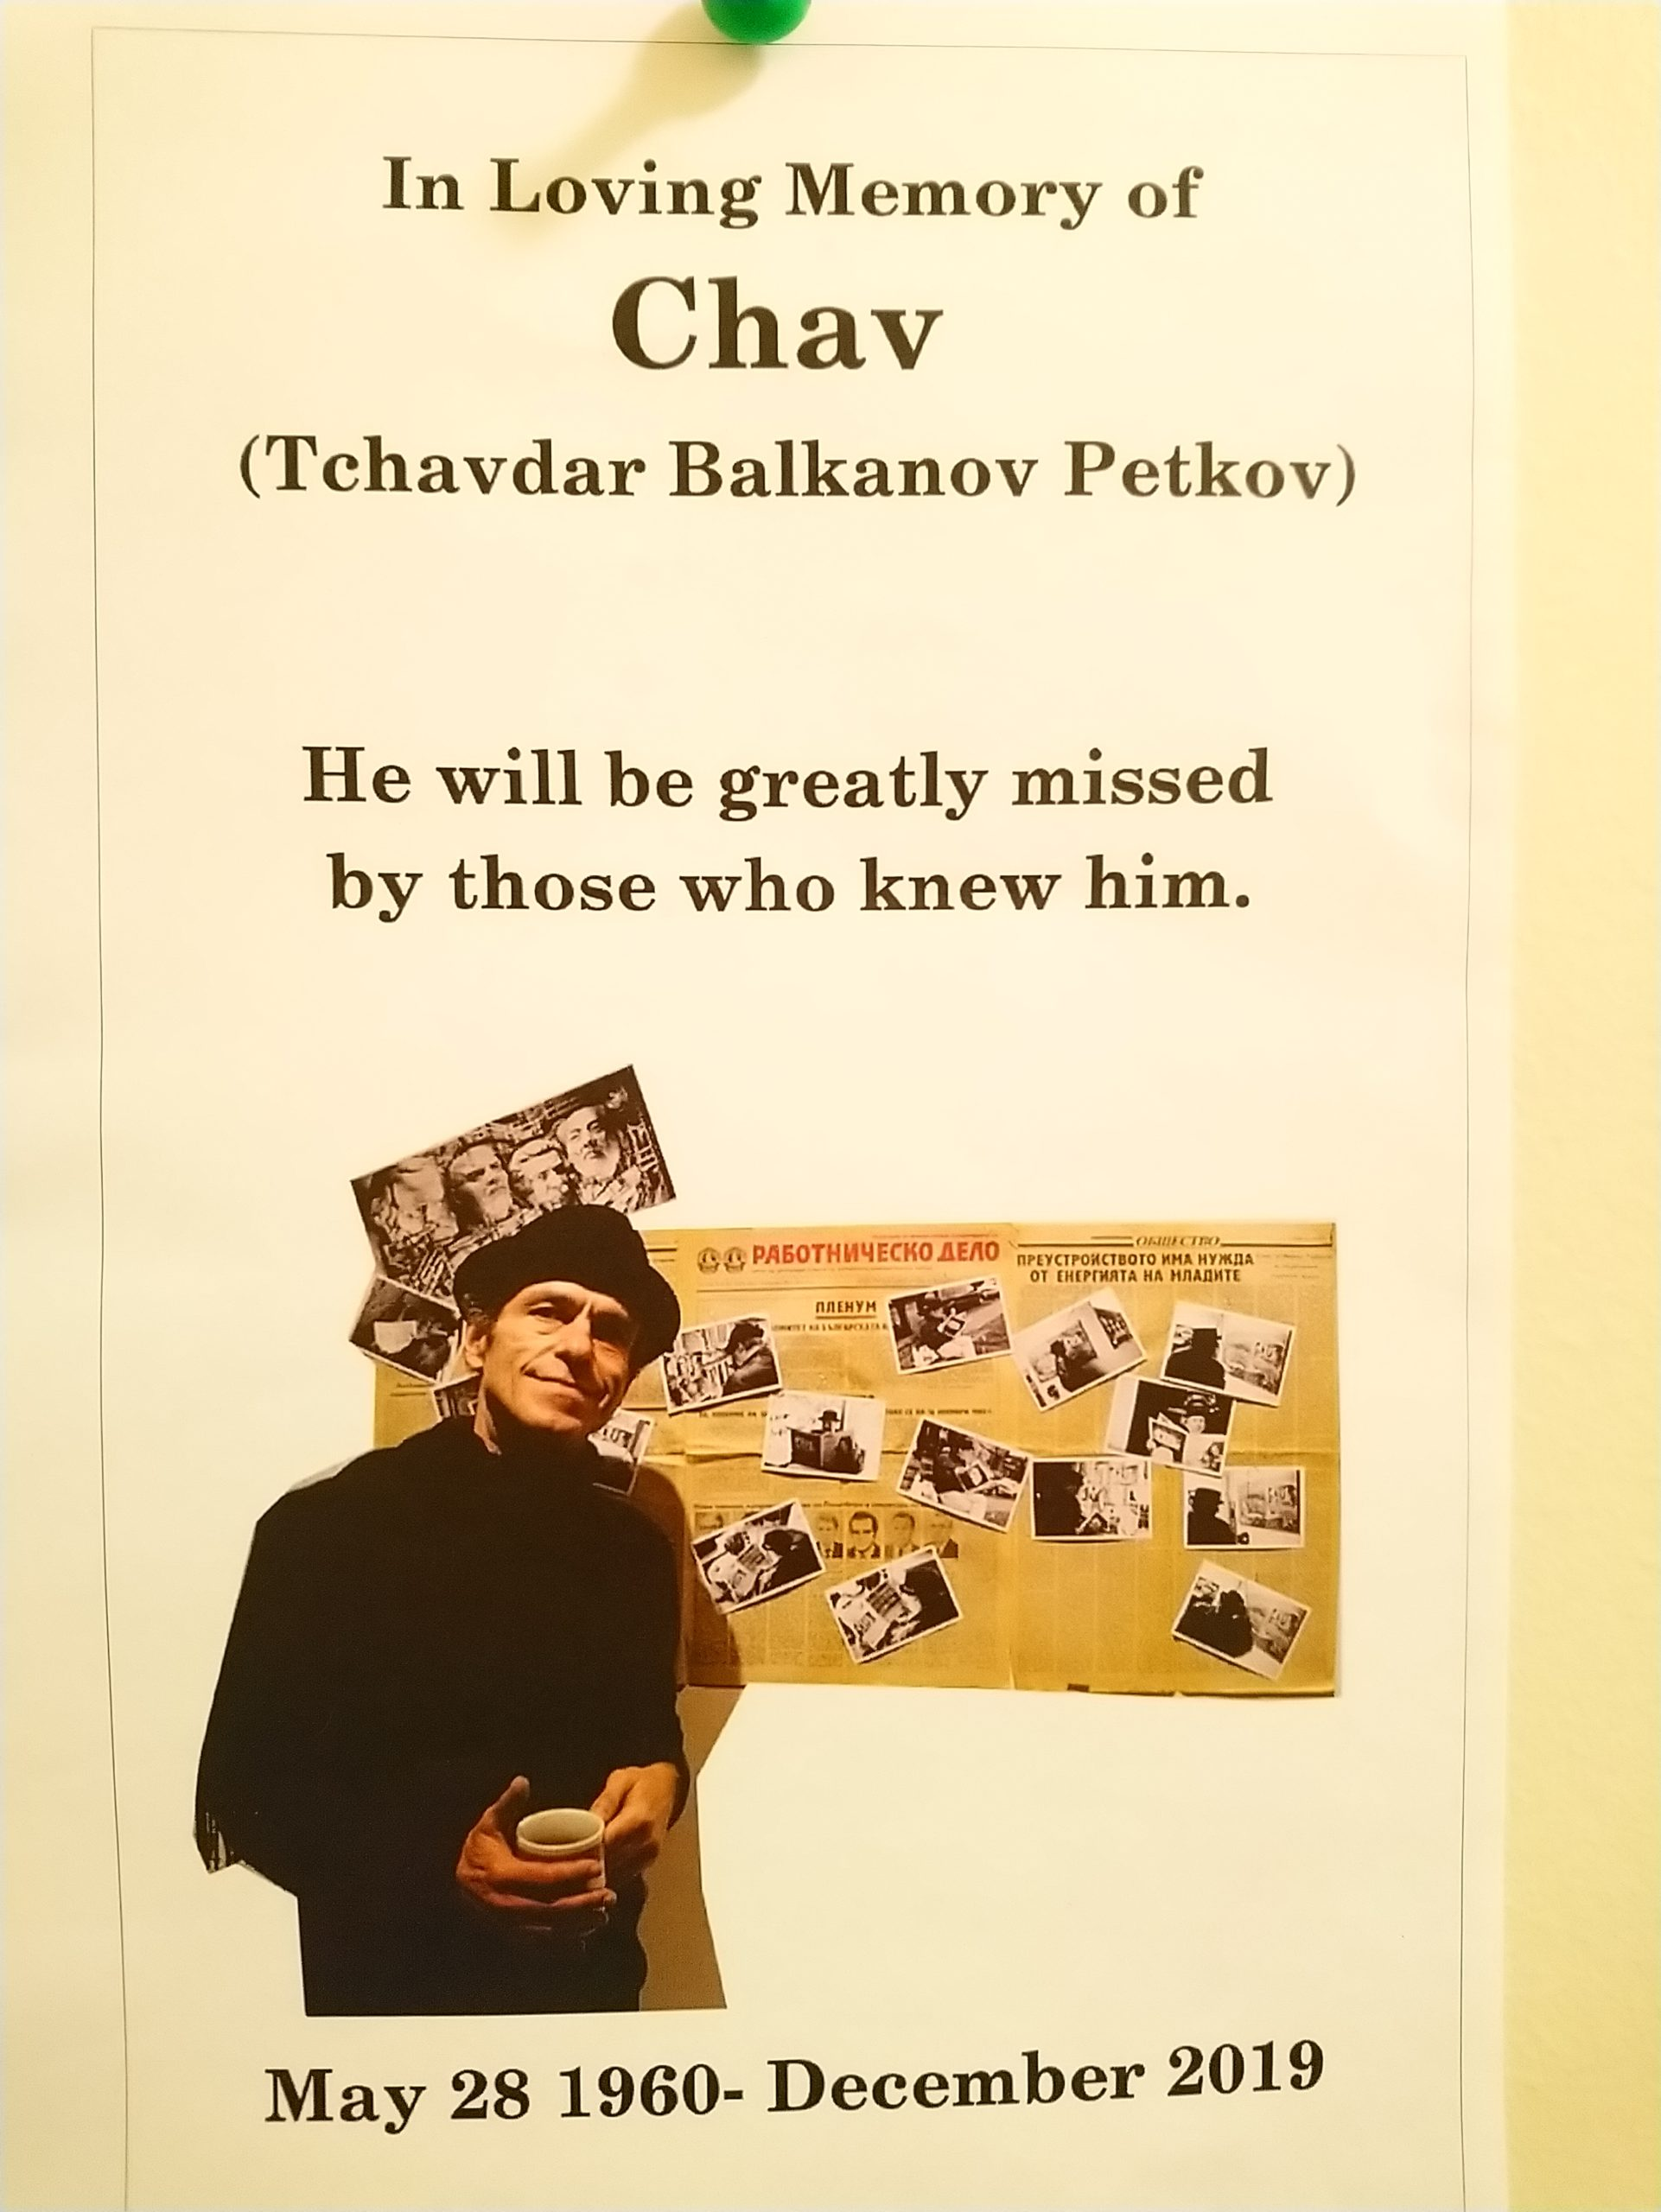 Poster Chav Petkov's memorial at Gallery Gachet Friday March 13 from 6-7pm.